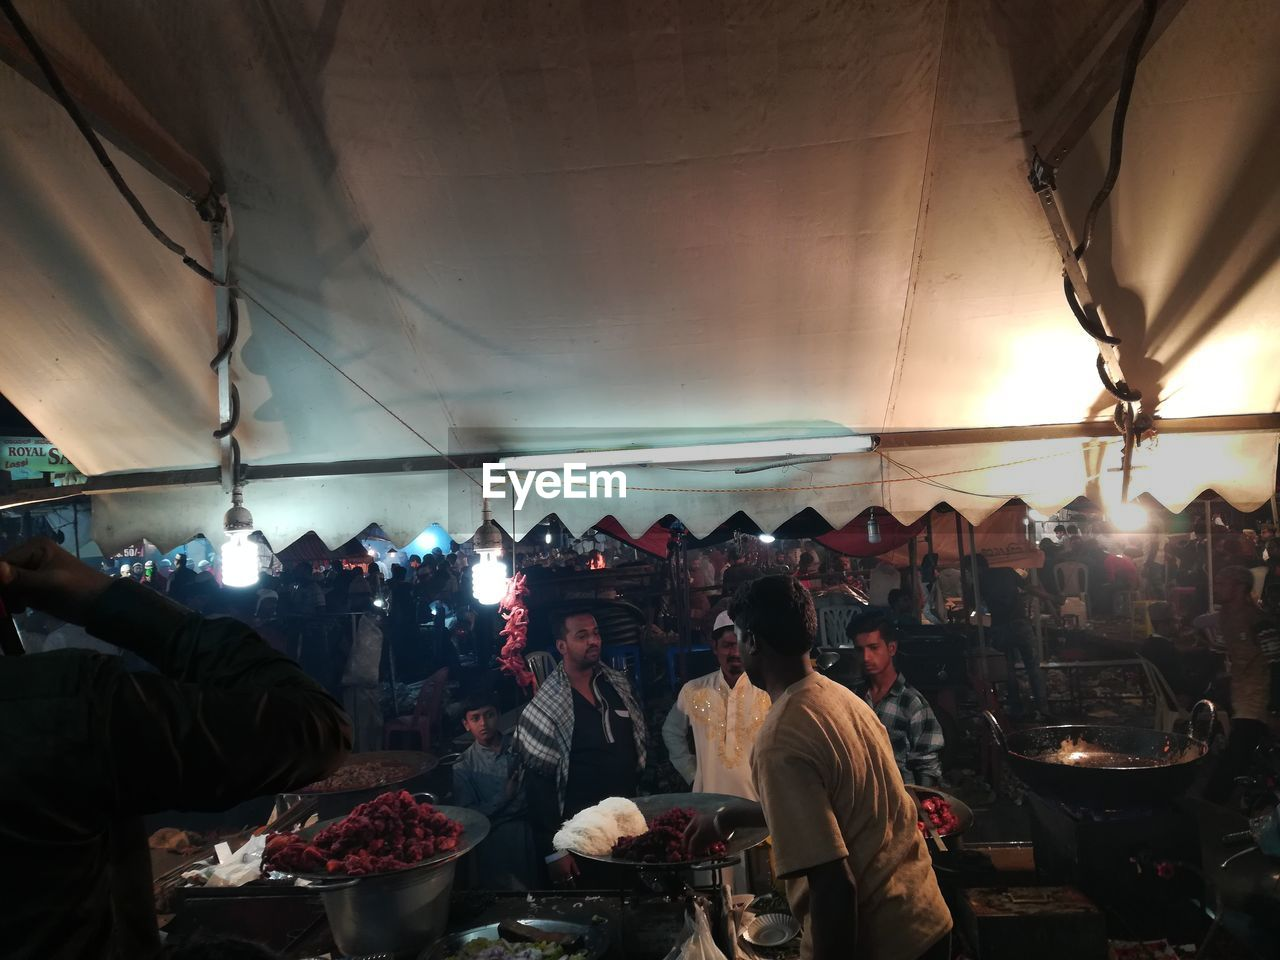 group of people, real people, crowd, large group of people, women, men, adult, market, illuminated, lifestyles, food and drink, business, market stall, indoors, lighting equipment, restaurant, food, leisure activity, architecture, street market, light, ceiling